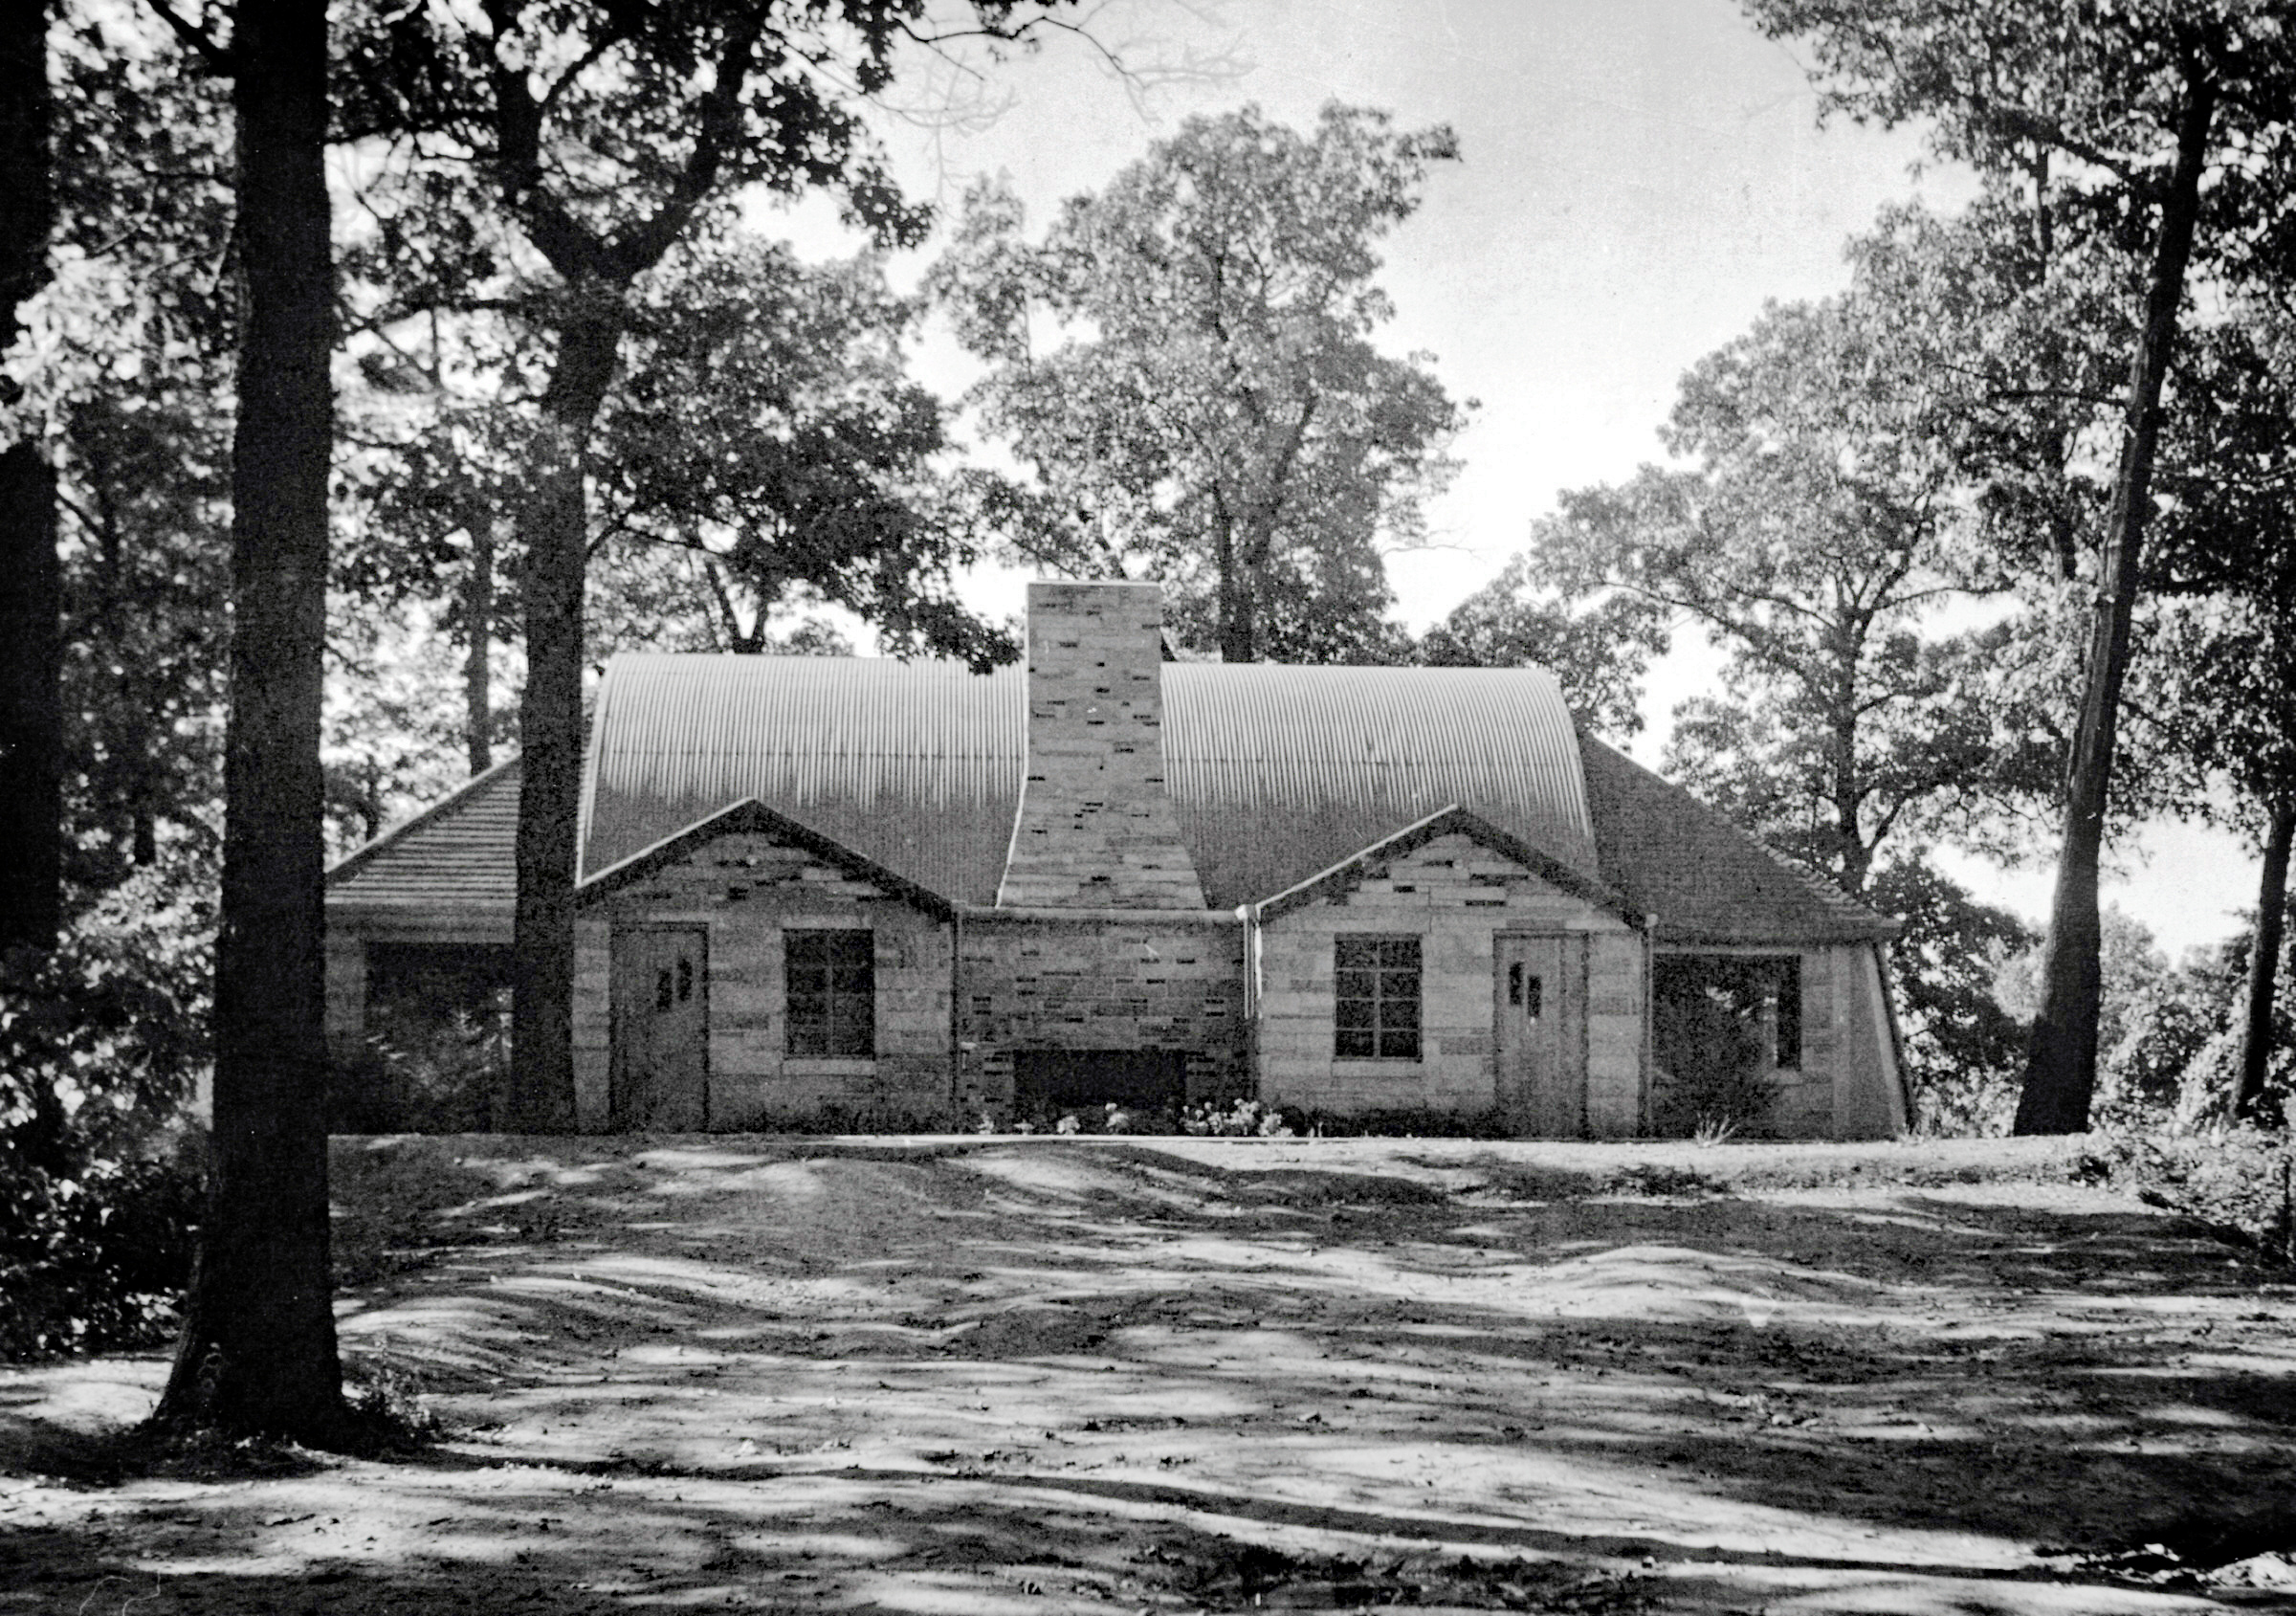 Hoover Lodge in 1949